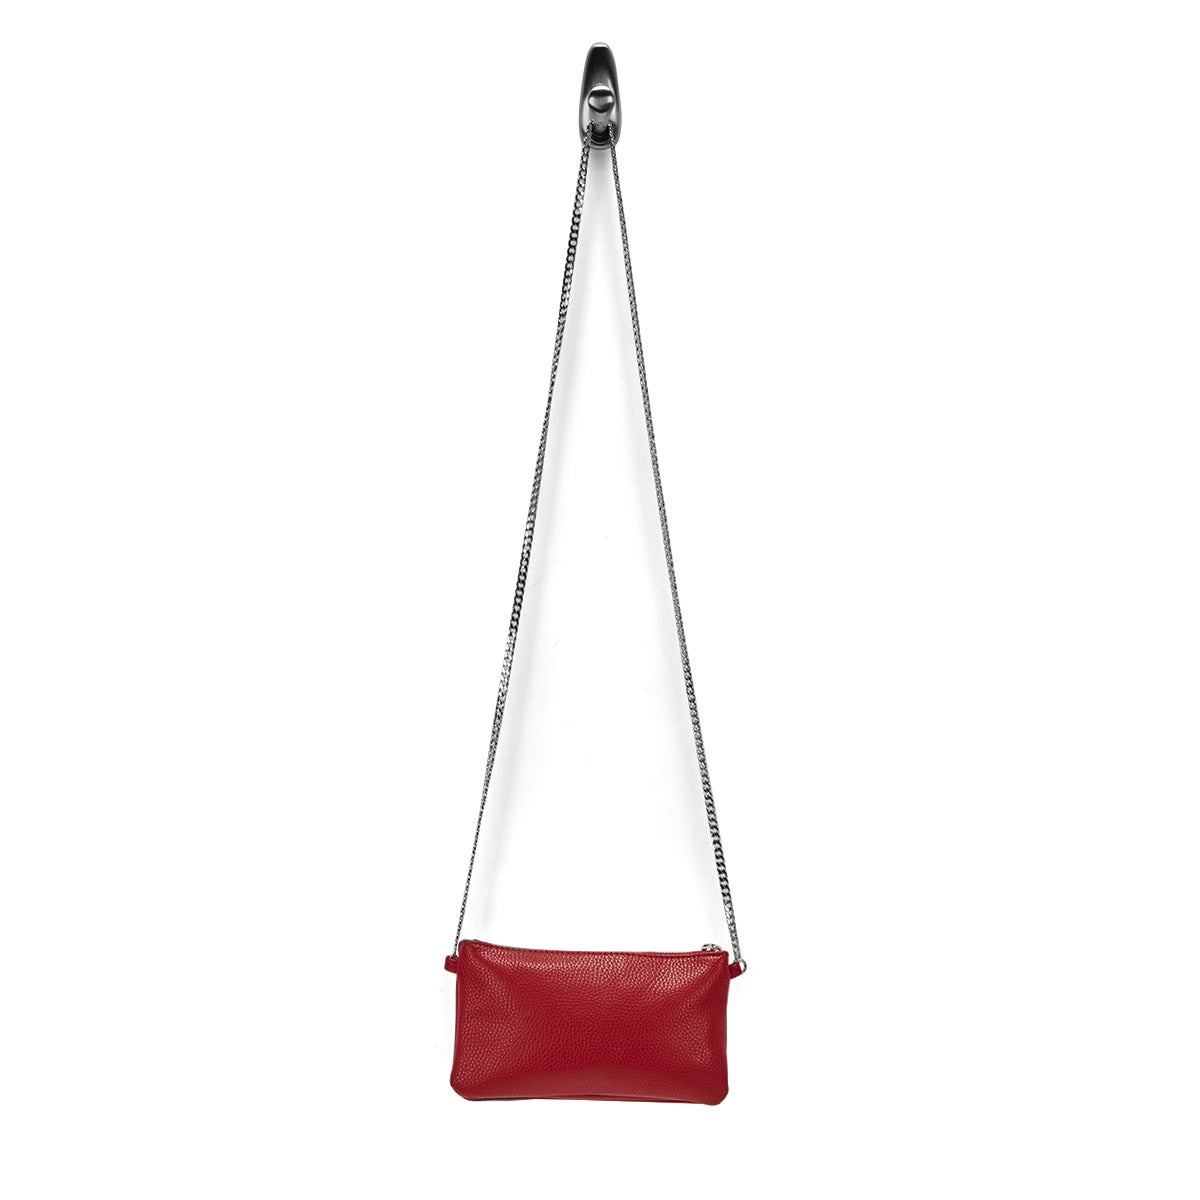 Lds Roots73 red mini shoulder bag